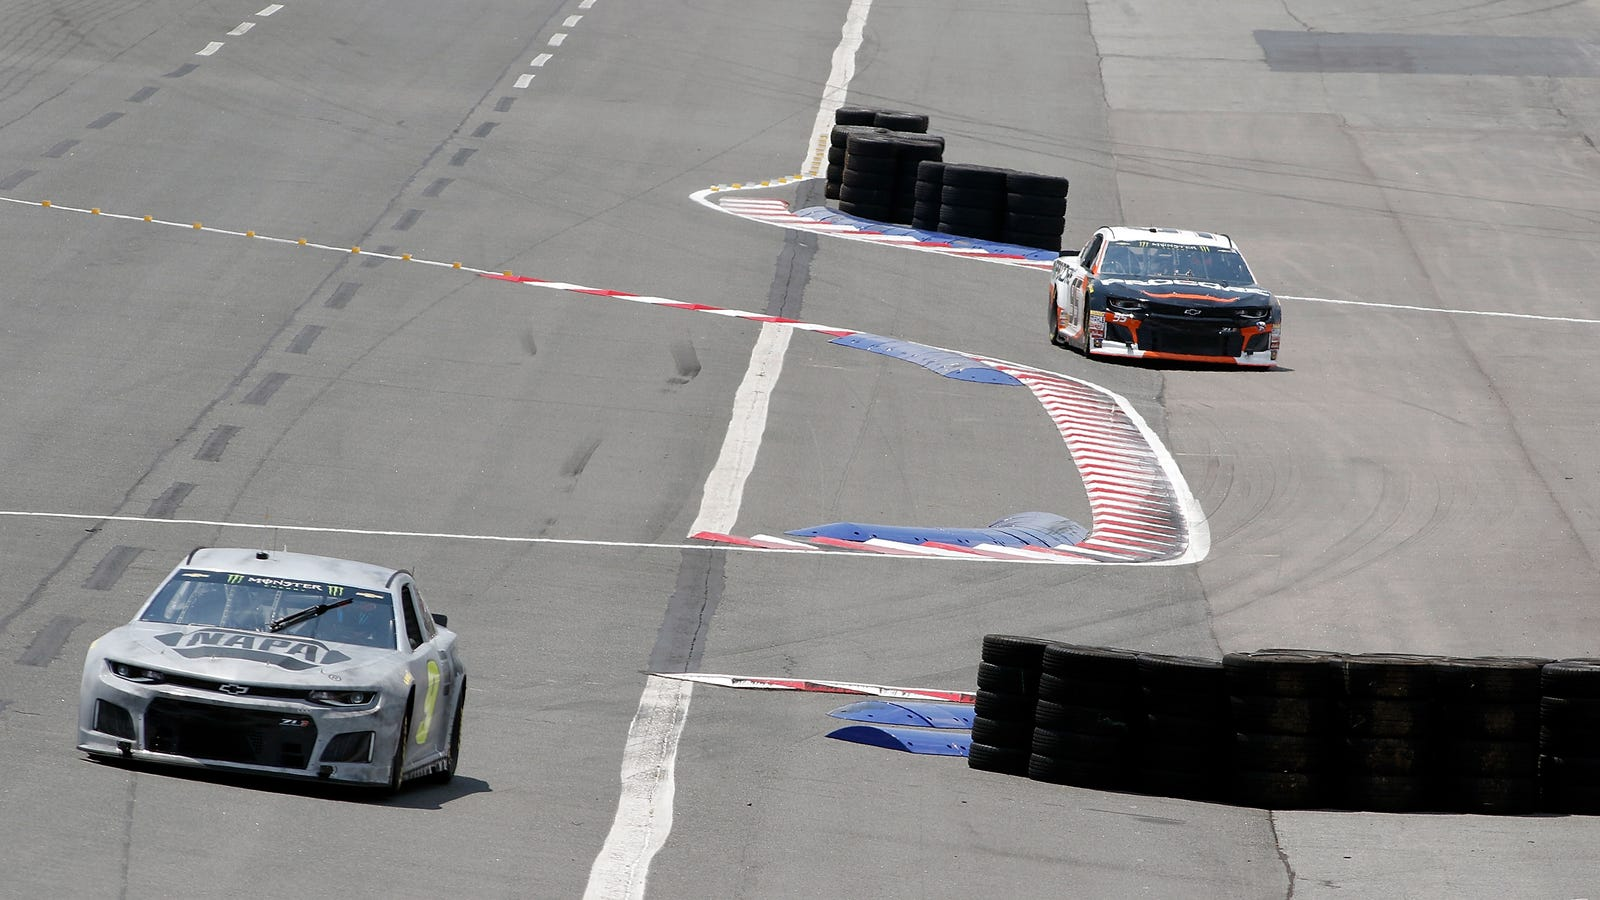 NASCAR Had To Adjust Its Road Course-Oval Track Because Drivers Kept Cheating It With Shortcuts